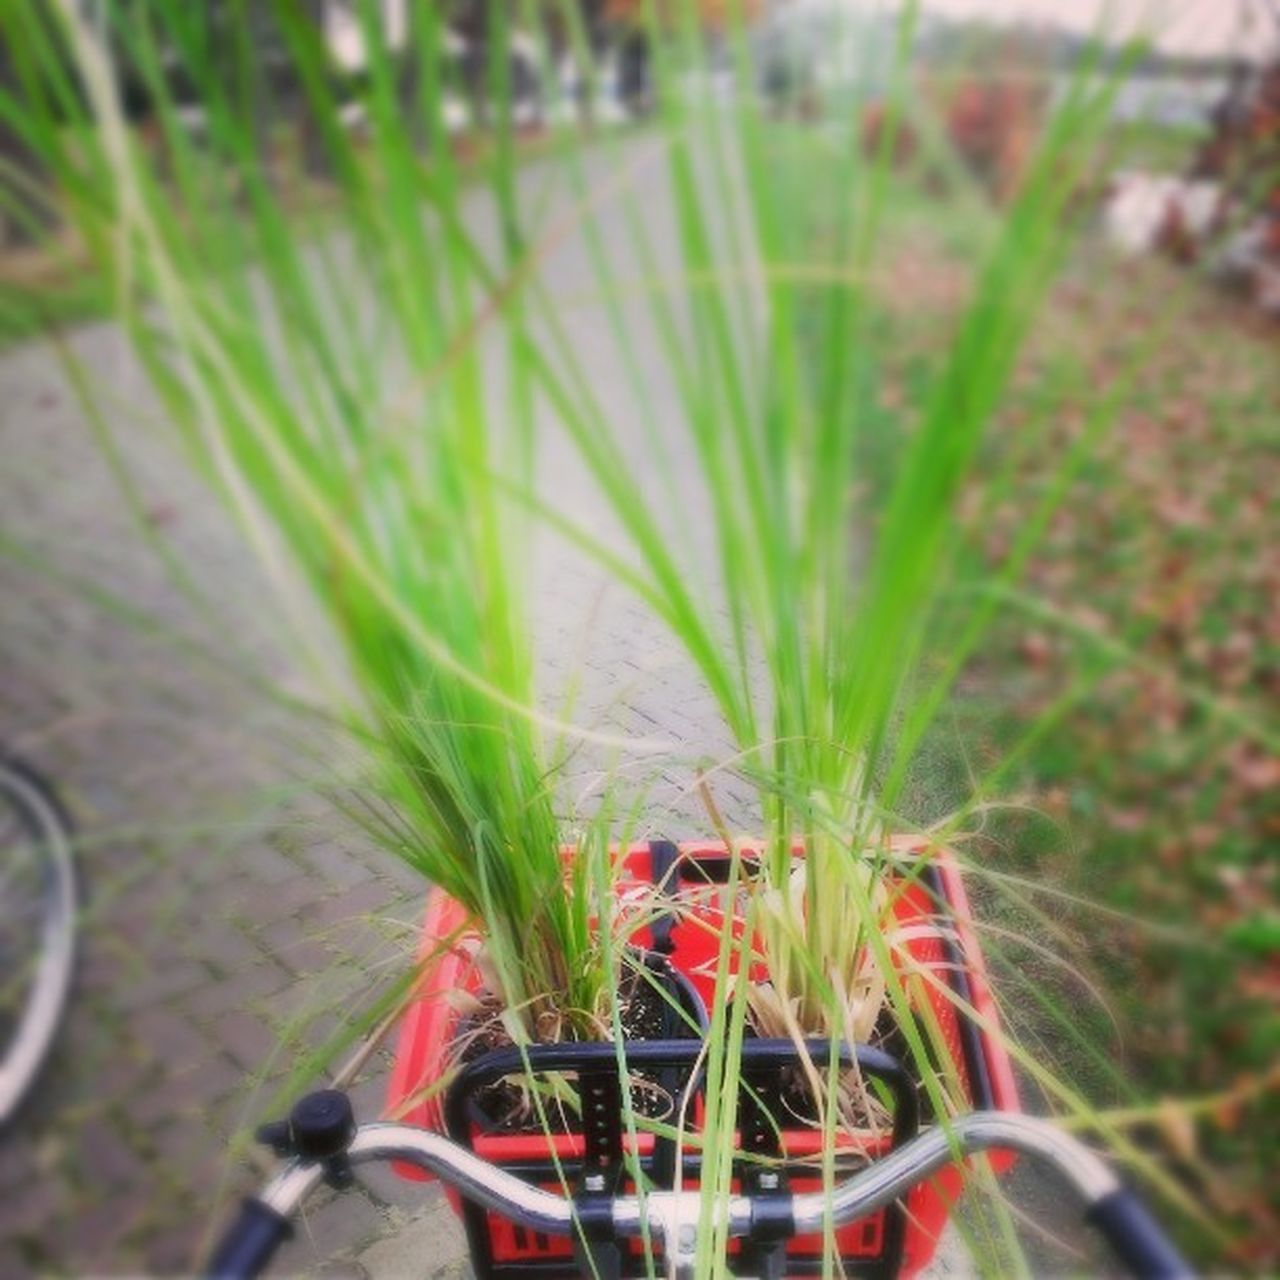 grass, growth, plant, outdoors, green color, red, nature, one person, day, flower, close-up, people